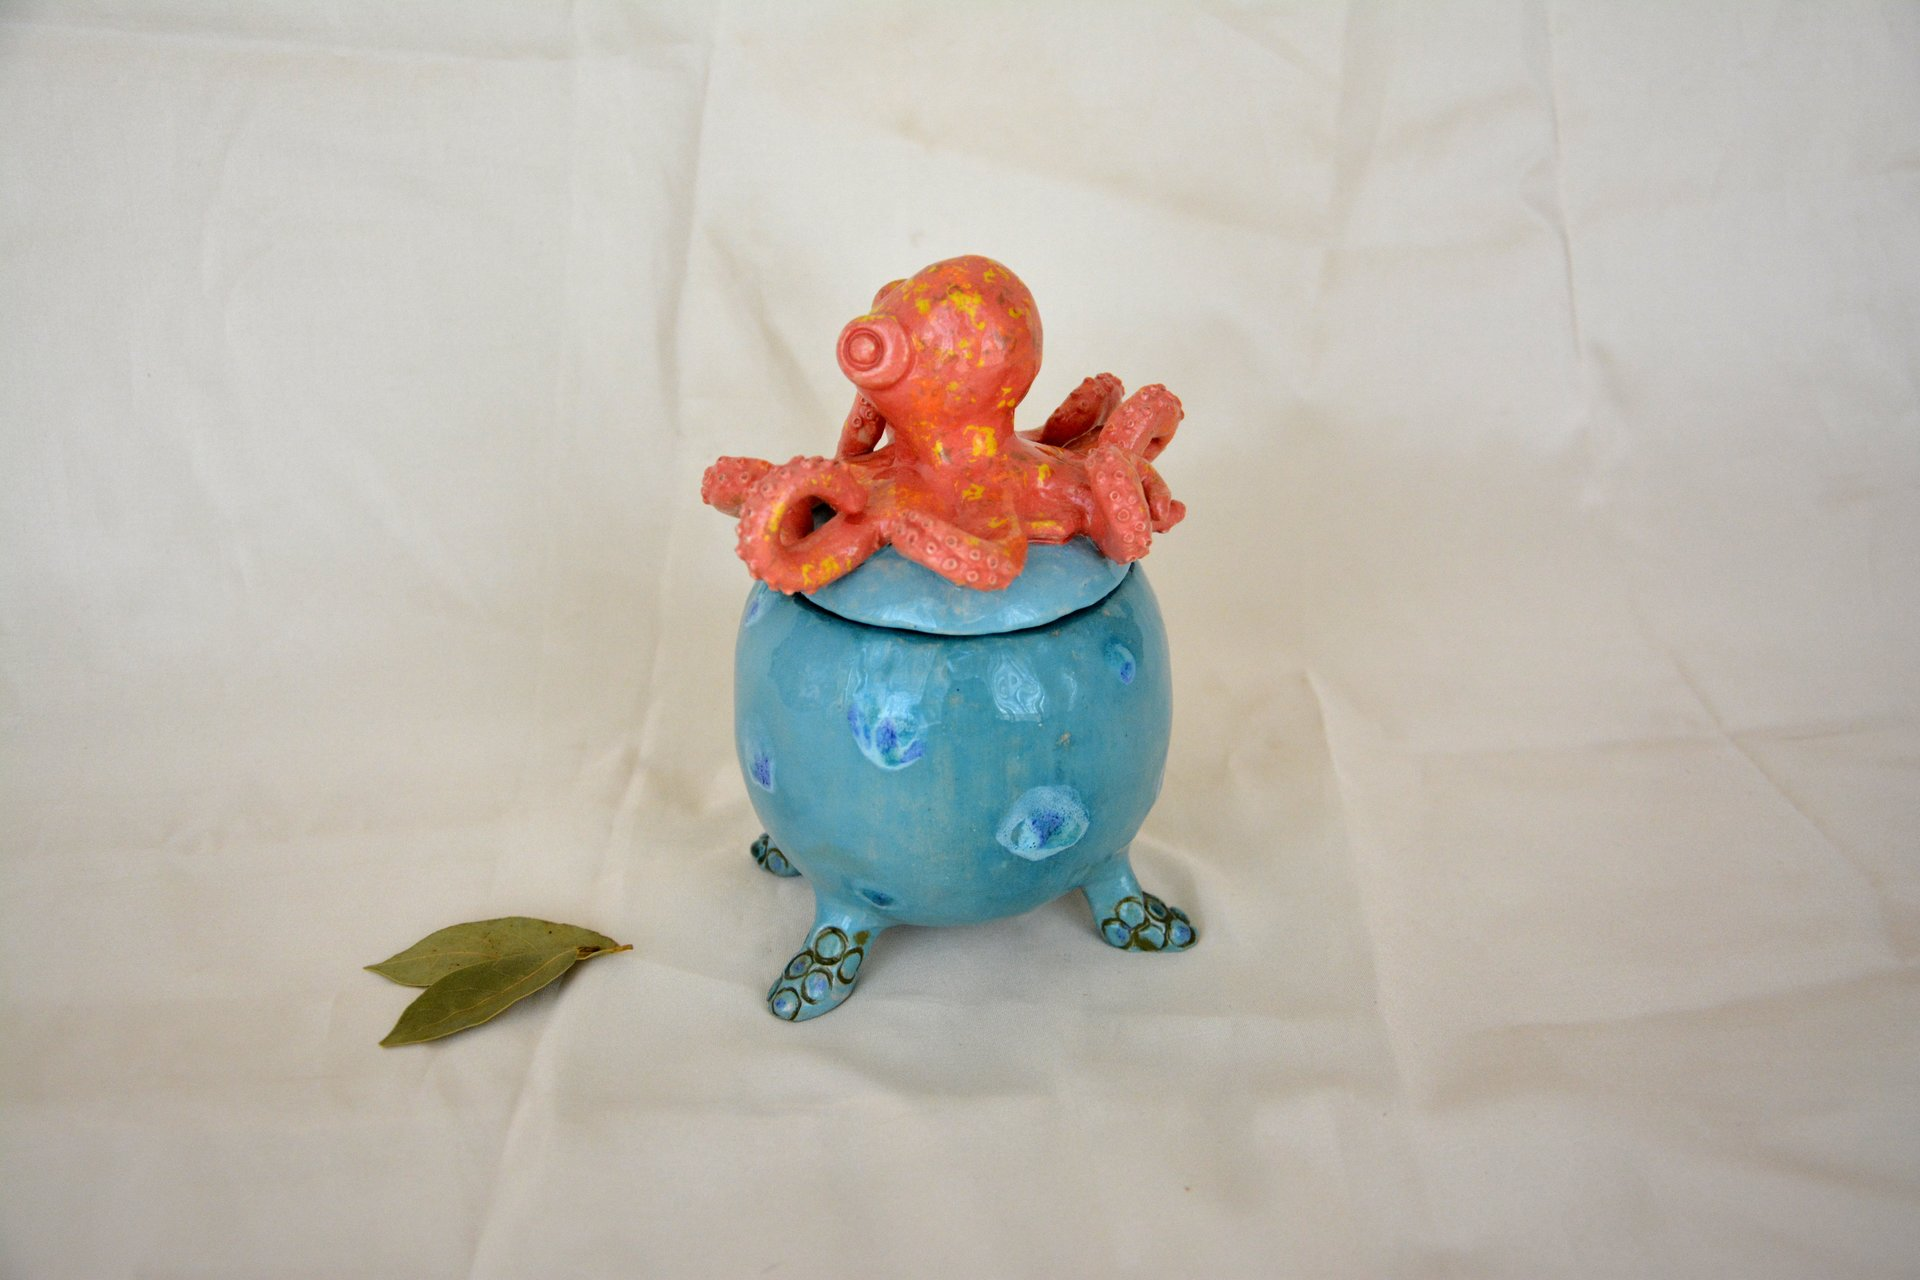 Octopus - Ceramic jars, 10 cm * 10 cm, height - 15 cm, photo 2 of 3.